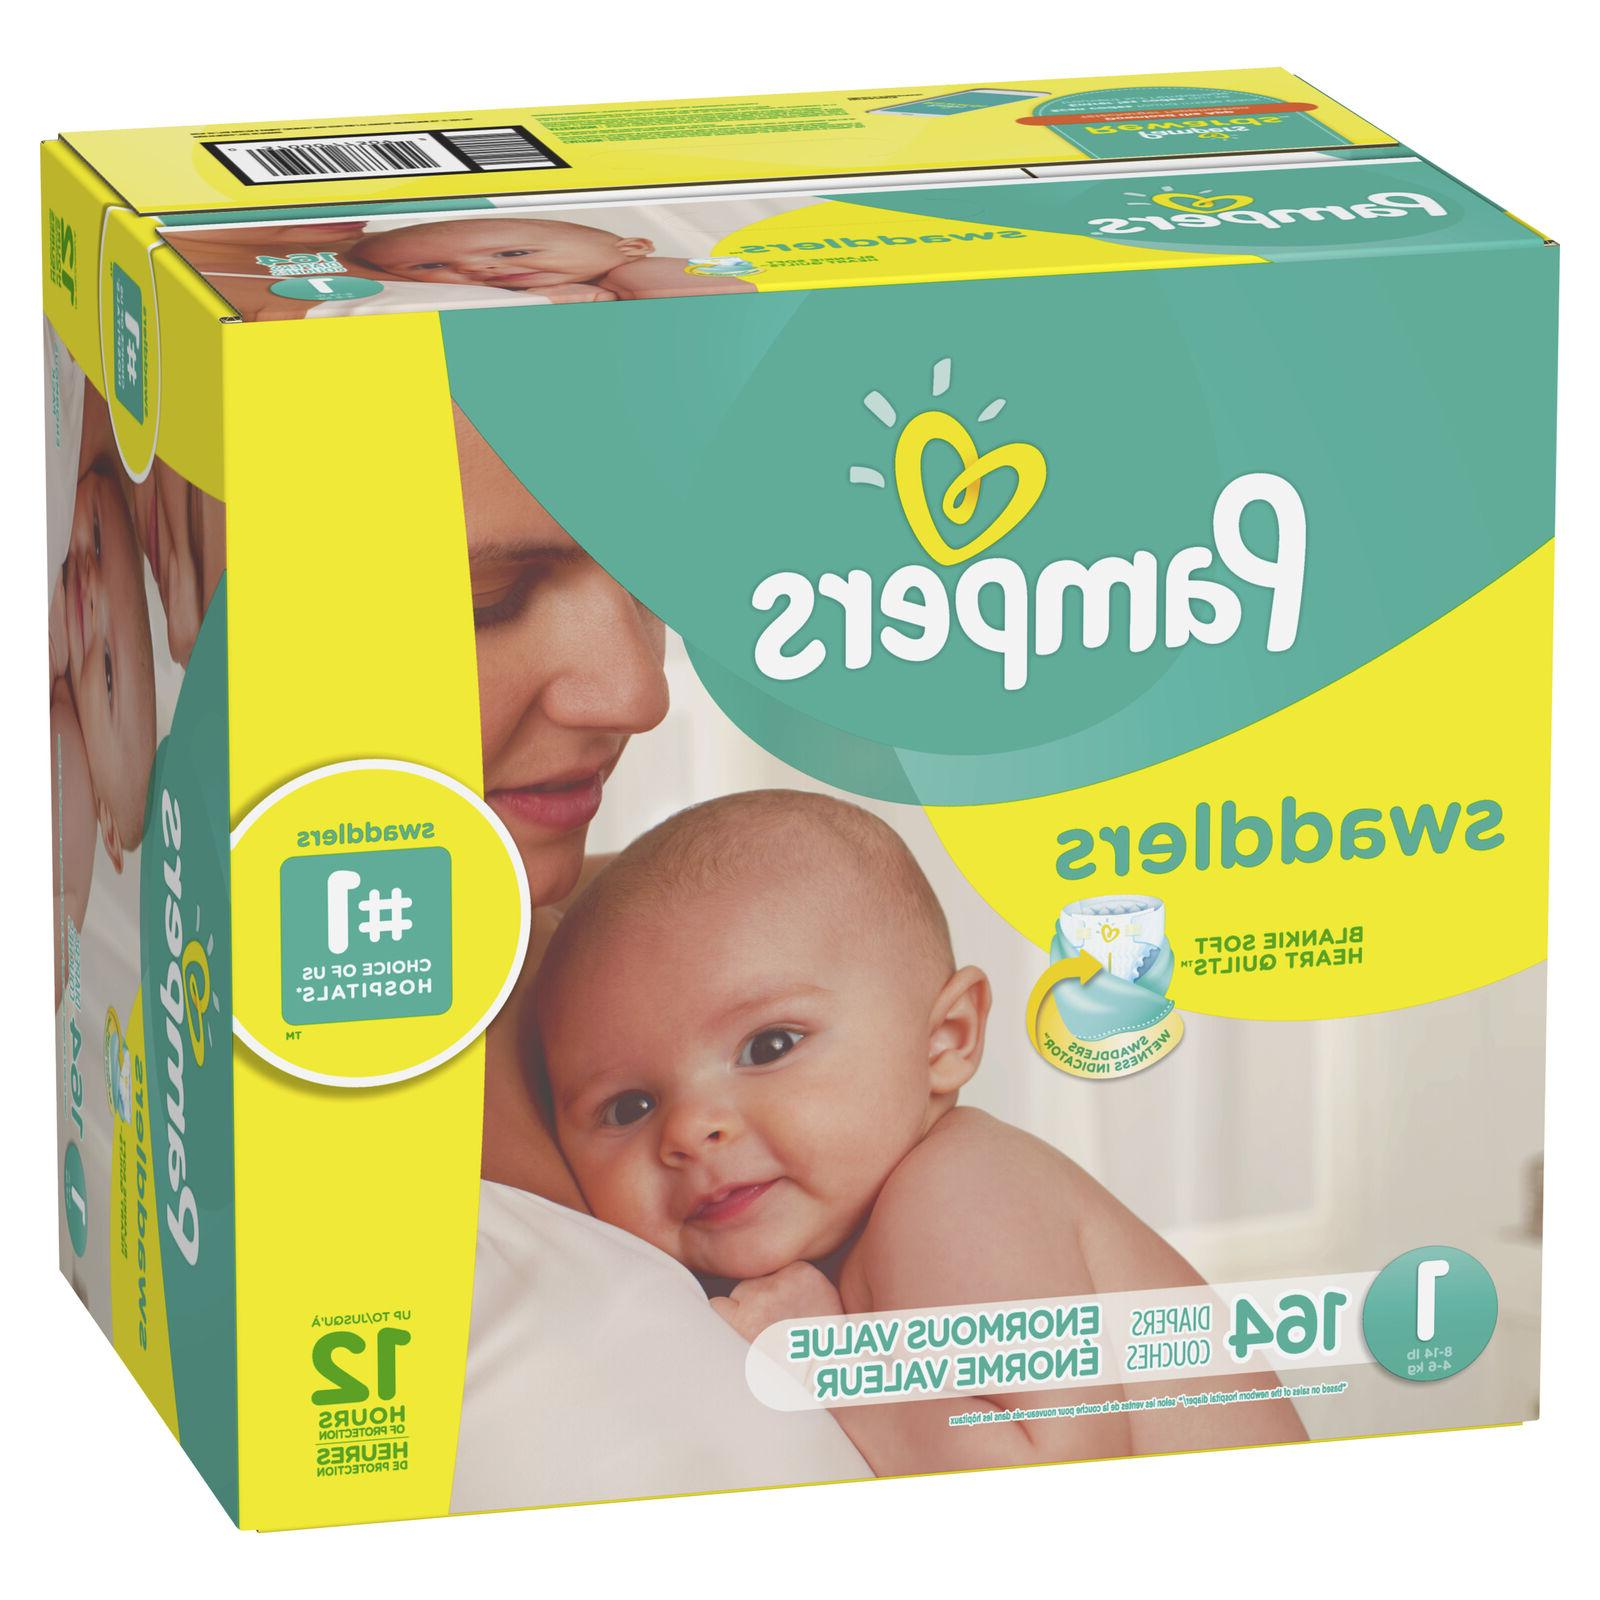 swaddlers diapers size 1 164 count